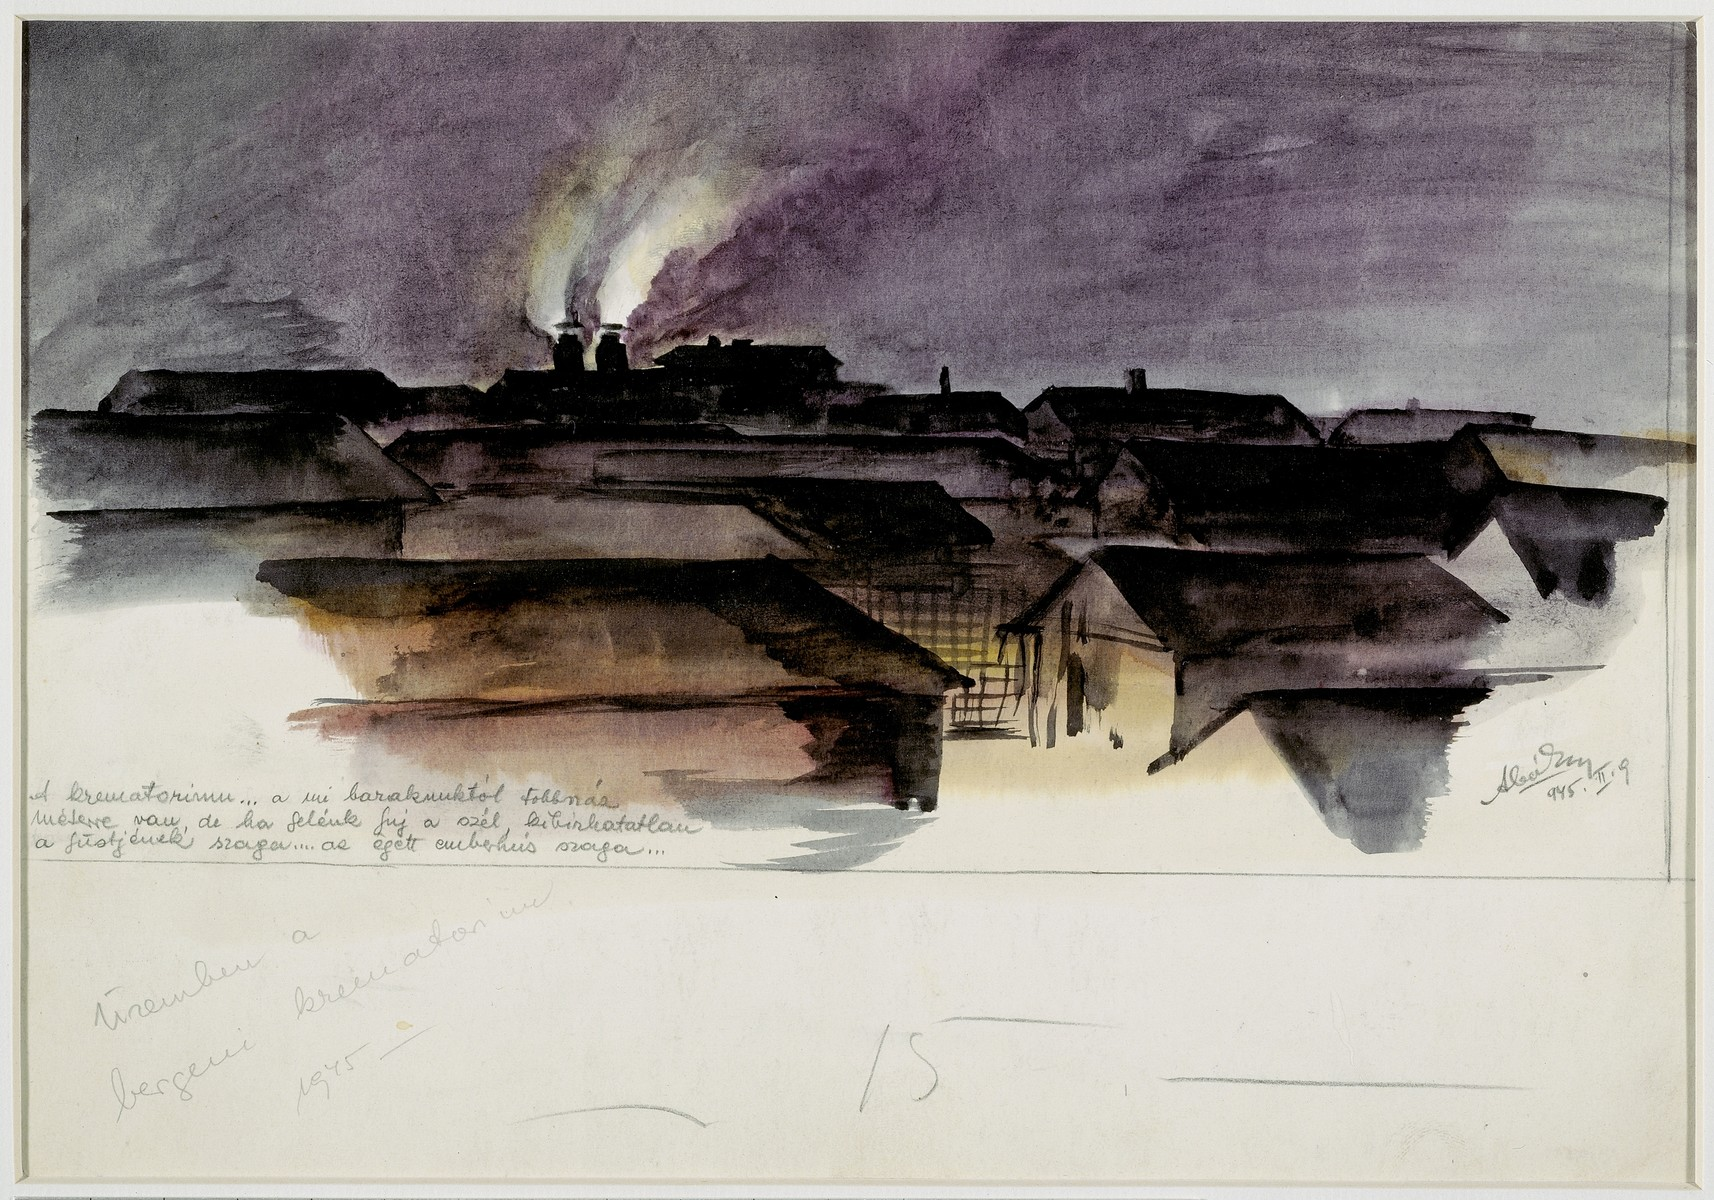 Holocaust art by Ervin Abadi. Watercolor.  Ervin Abadi, a Hungarian Jew from Budapest, was an aspiring young artist when WWII began.  He was drafted into the Hungarian labor service in the early 1940s.  Abadi managed to escape, but  was recaptured and immediately deported to Bergen-Belsen.  When the camp was liberated, his condition was such that he required extended hospitalization.  During his convalescence, he created dozens of works of holocaust art, including ink drawings, pencil and ink sketches and  watercolors. After recuperating Abadi returned to Budapest, where he published a collection of his watercolors in 1946.  After becoming disillusioned with the communist regime in Hungary, he moved to Israel, where he continued to publish in Hungarian and Hebrew.  He died in Israel in 1980.